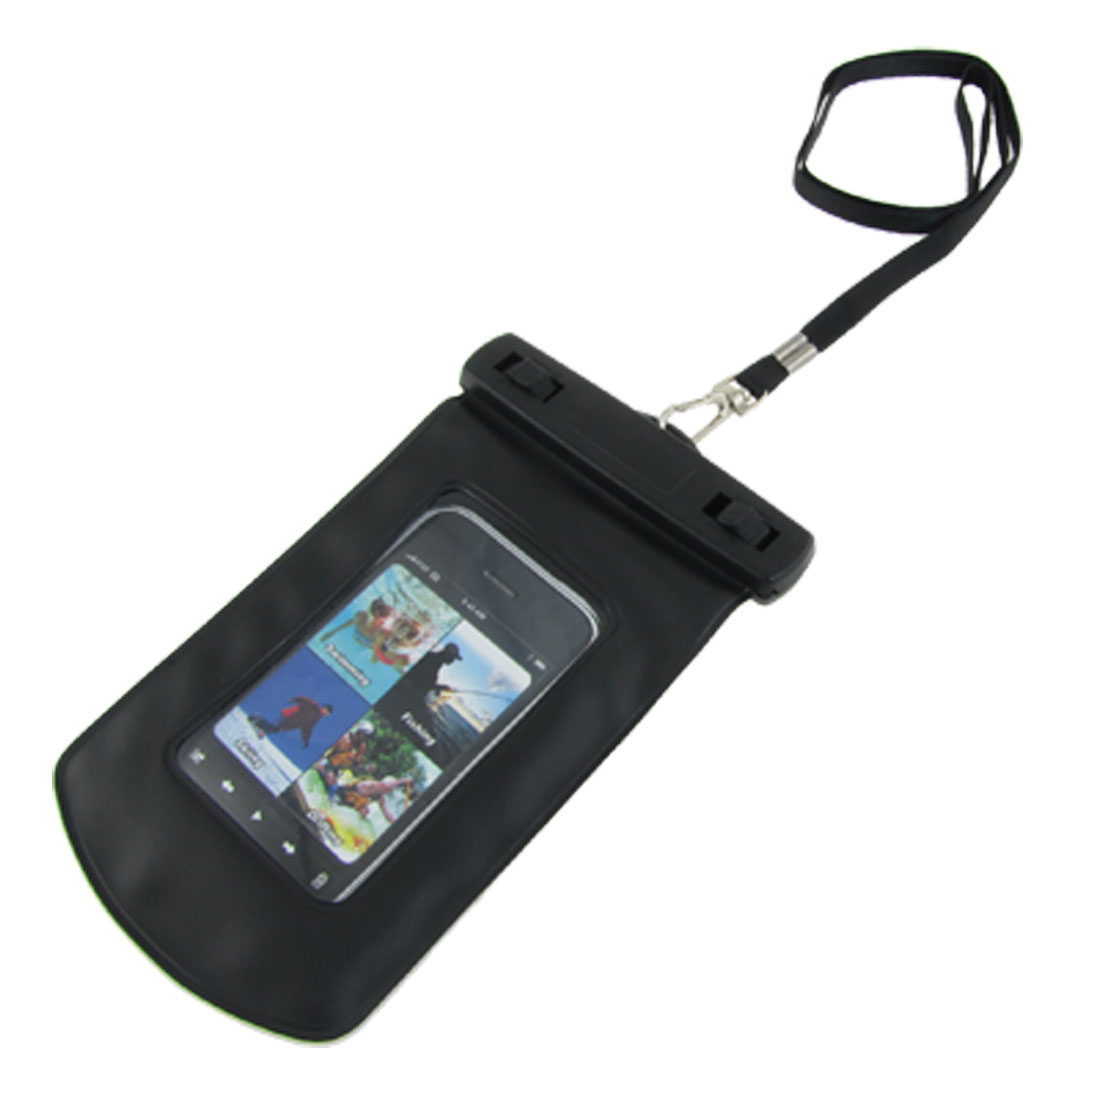 Waterproof Black PVC Plastic Pouch + Lanyard + Armband for iPhone 3G 3GS